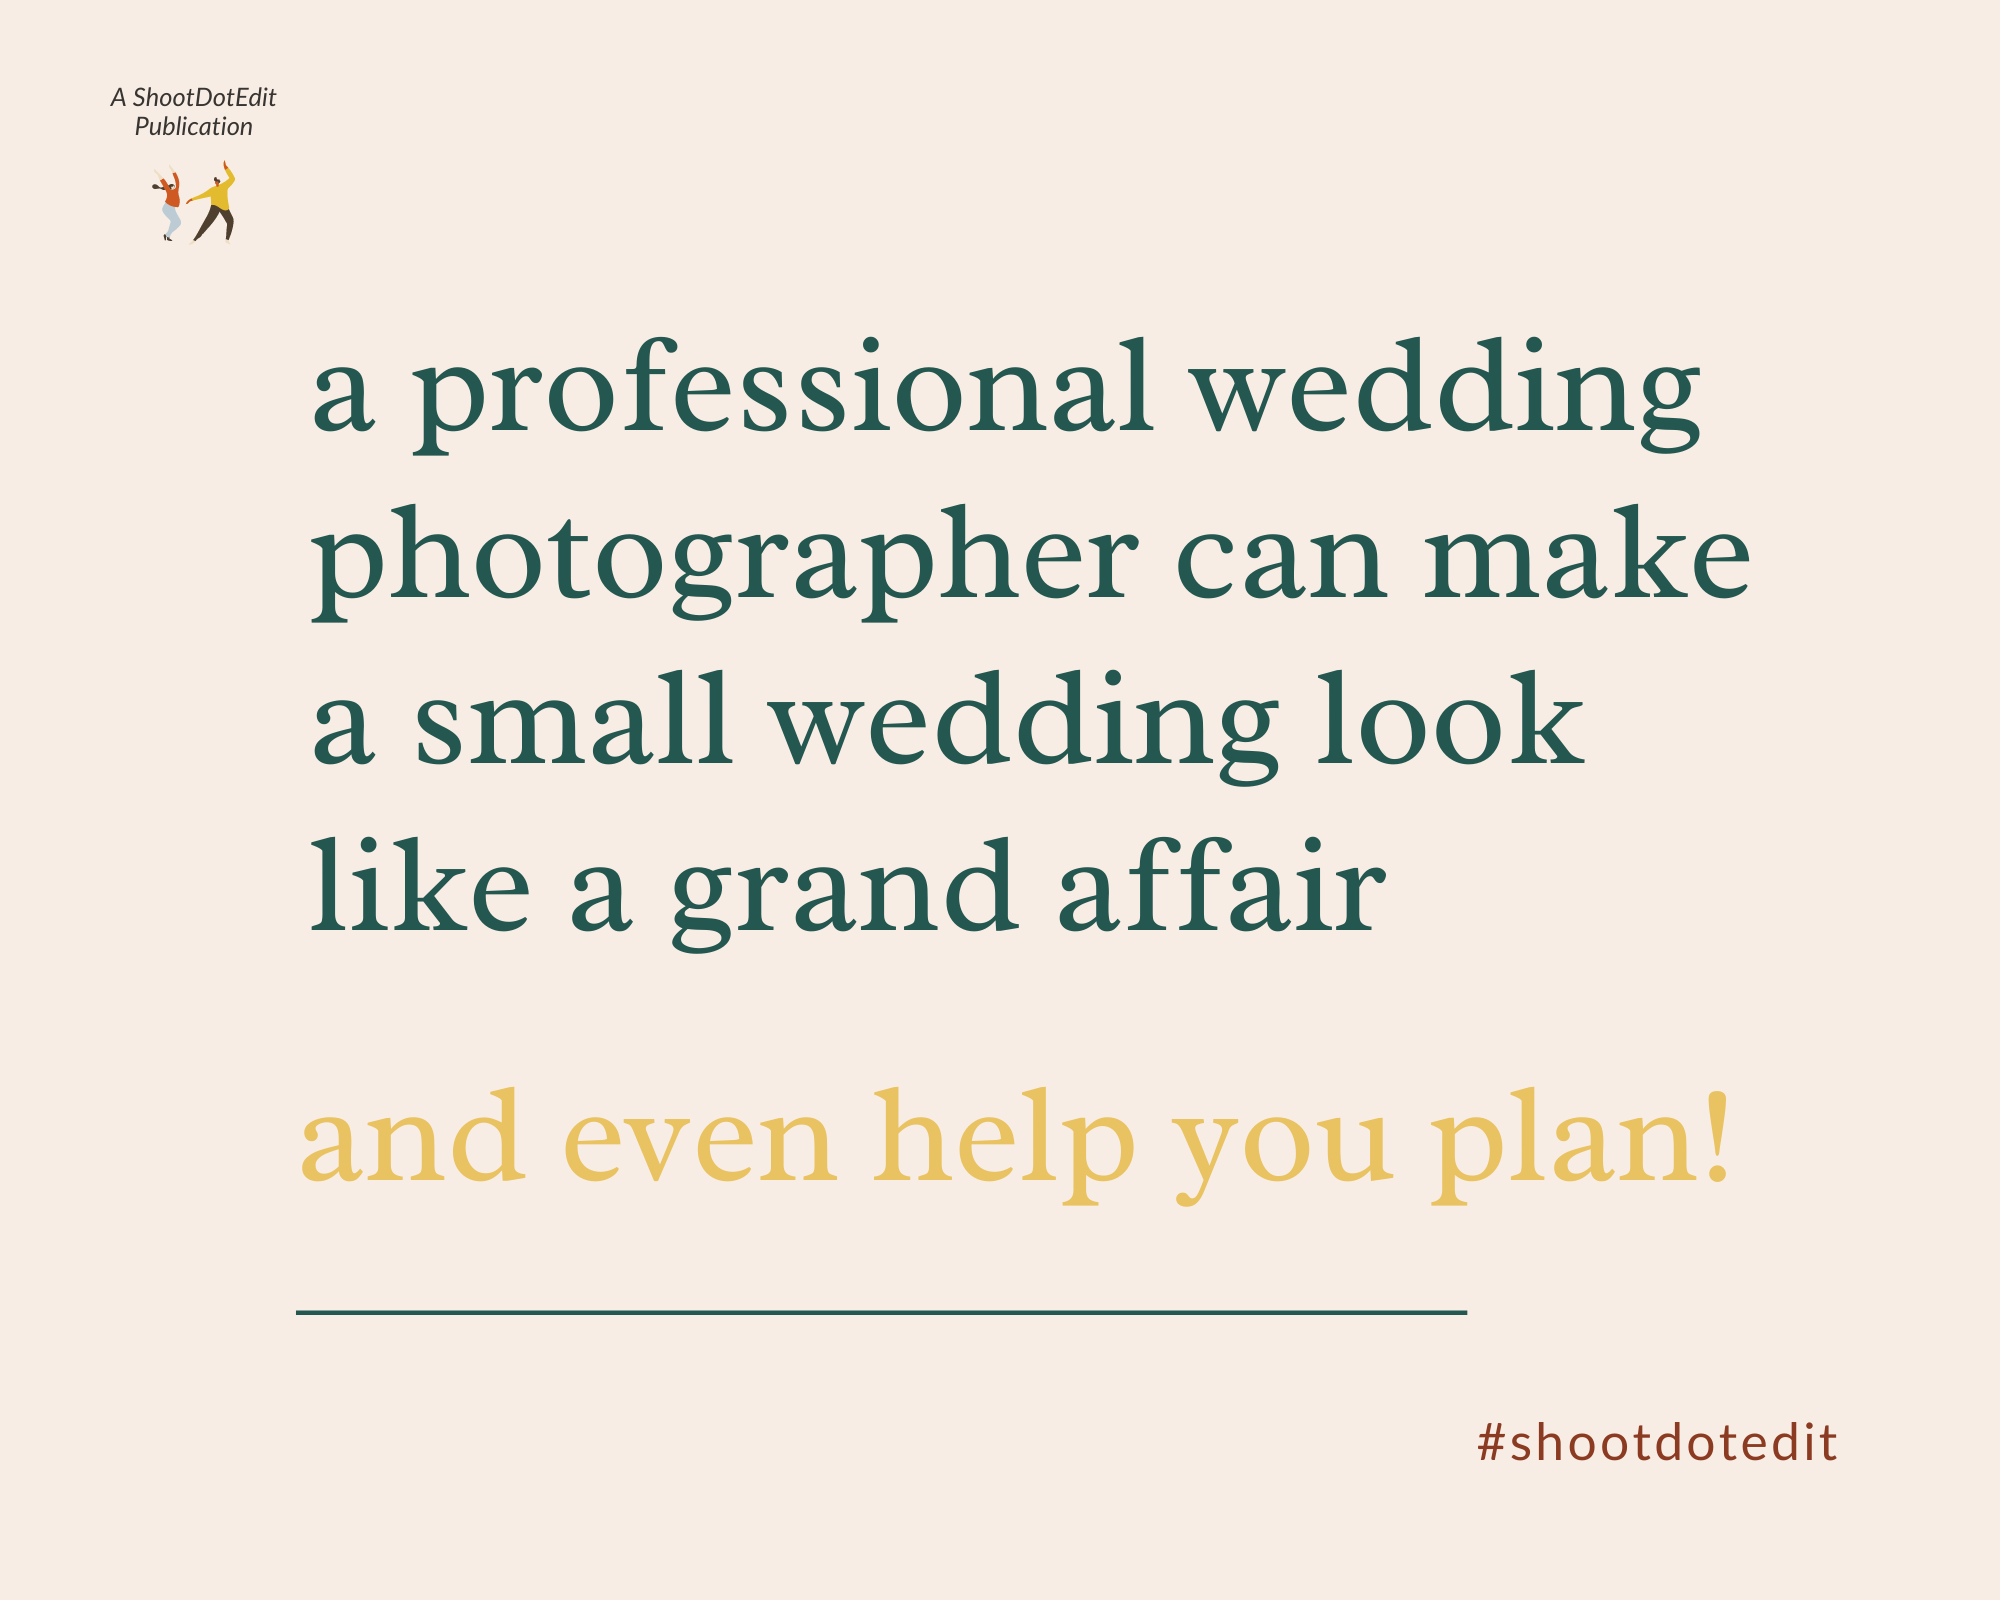 Infographic stating - a professional wedding photographer can make a small wedding look like a grand affair